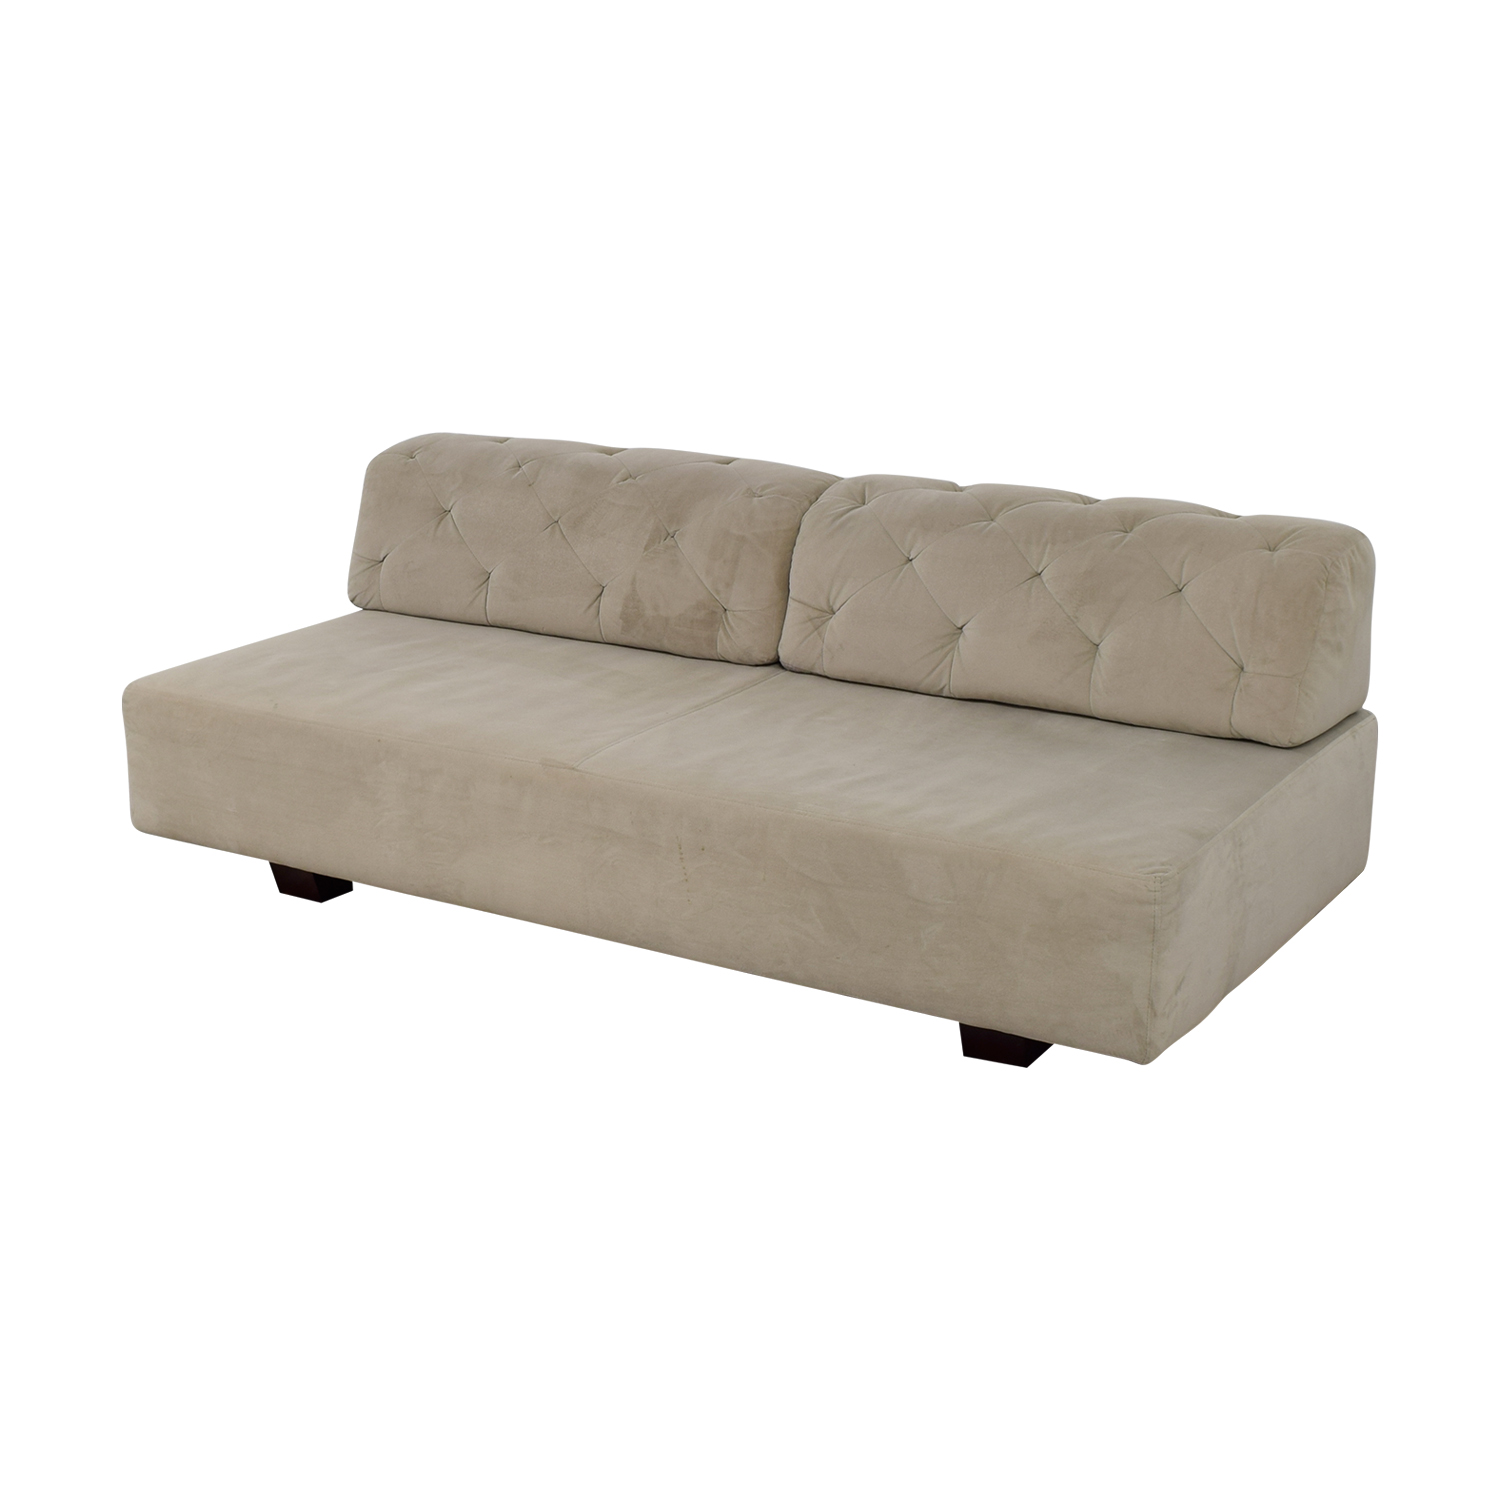 West Elm West Elm Beige Tuffed Sofa